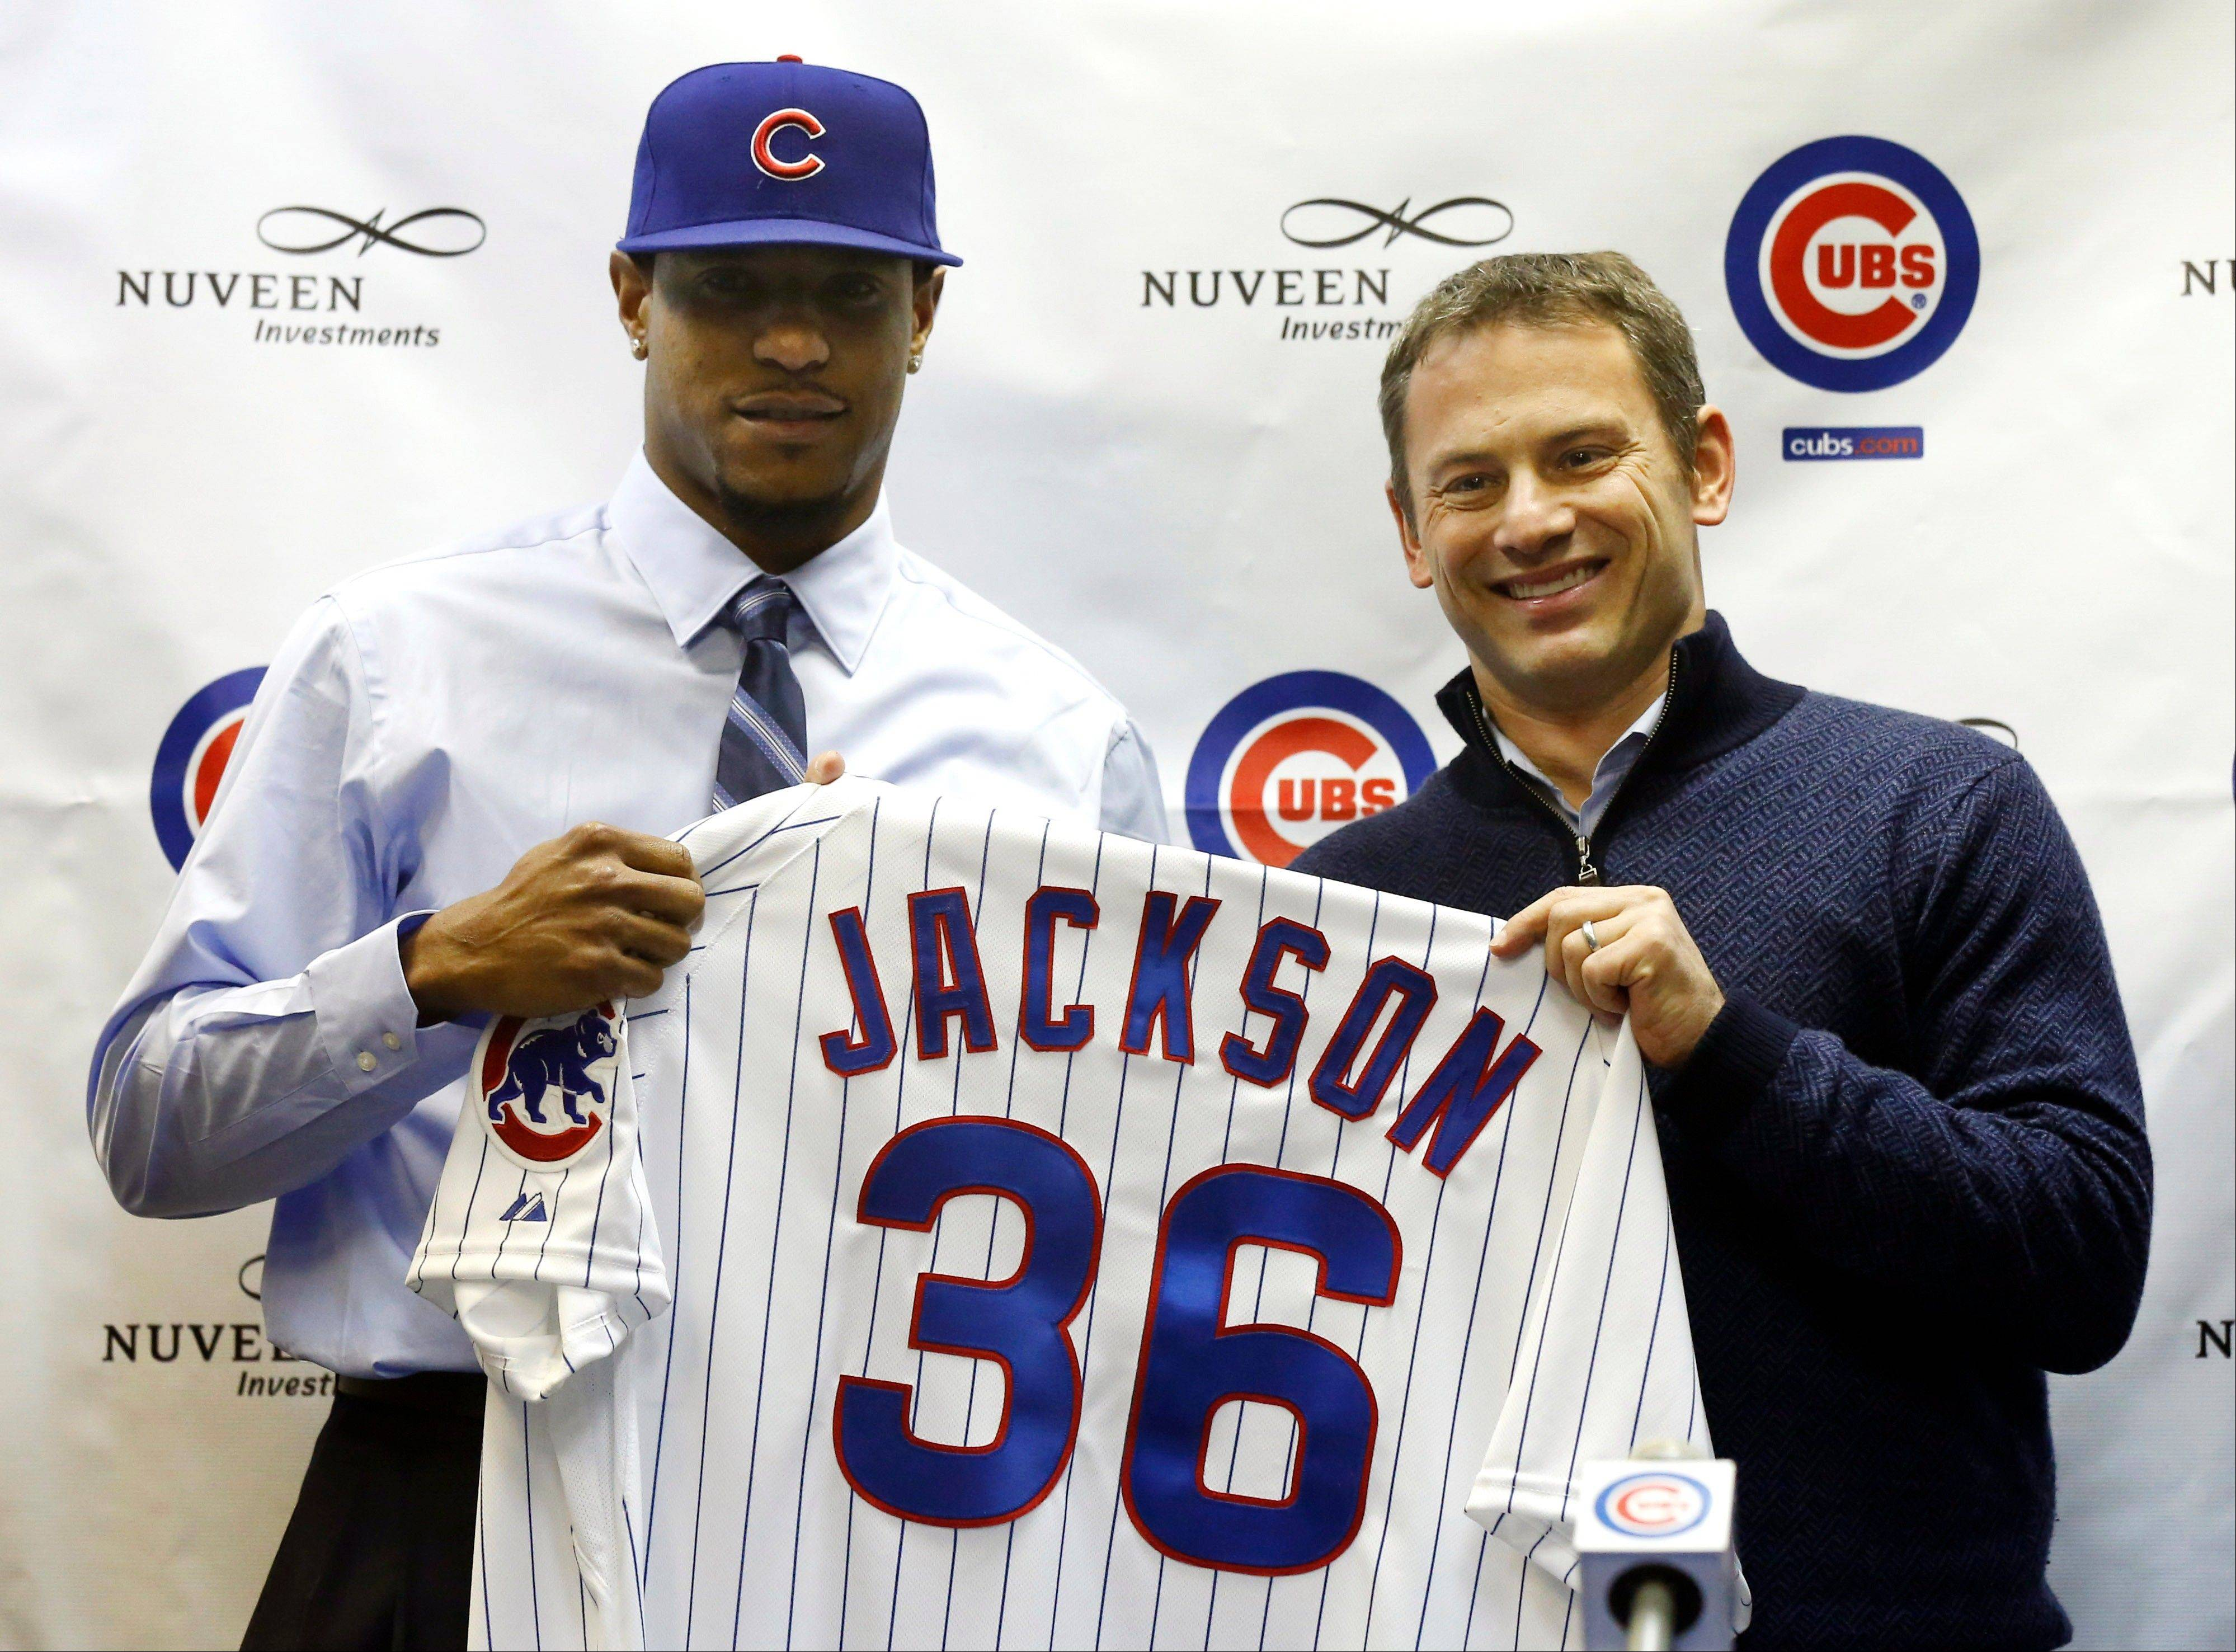 Cubs general manager Jed Hoyer, right, poses with newly signed right-handed pitcher Edwin Jackson during an introductory news conference Wednesday at Wrigley Field.